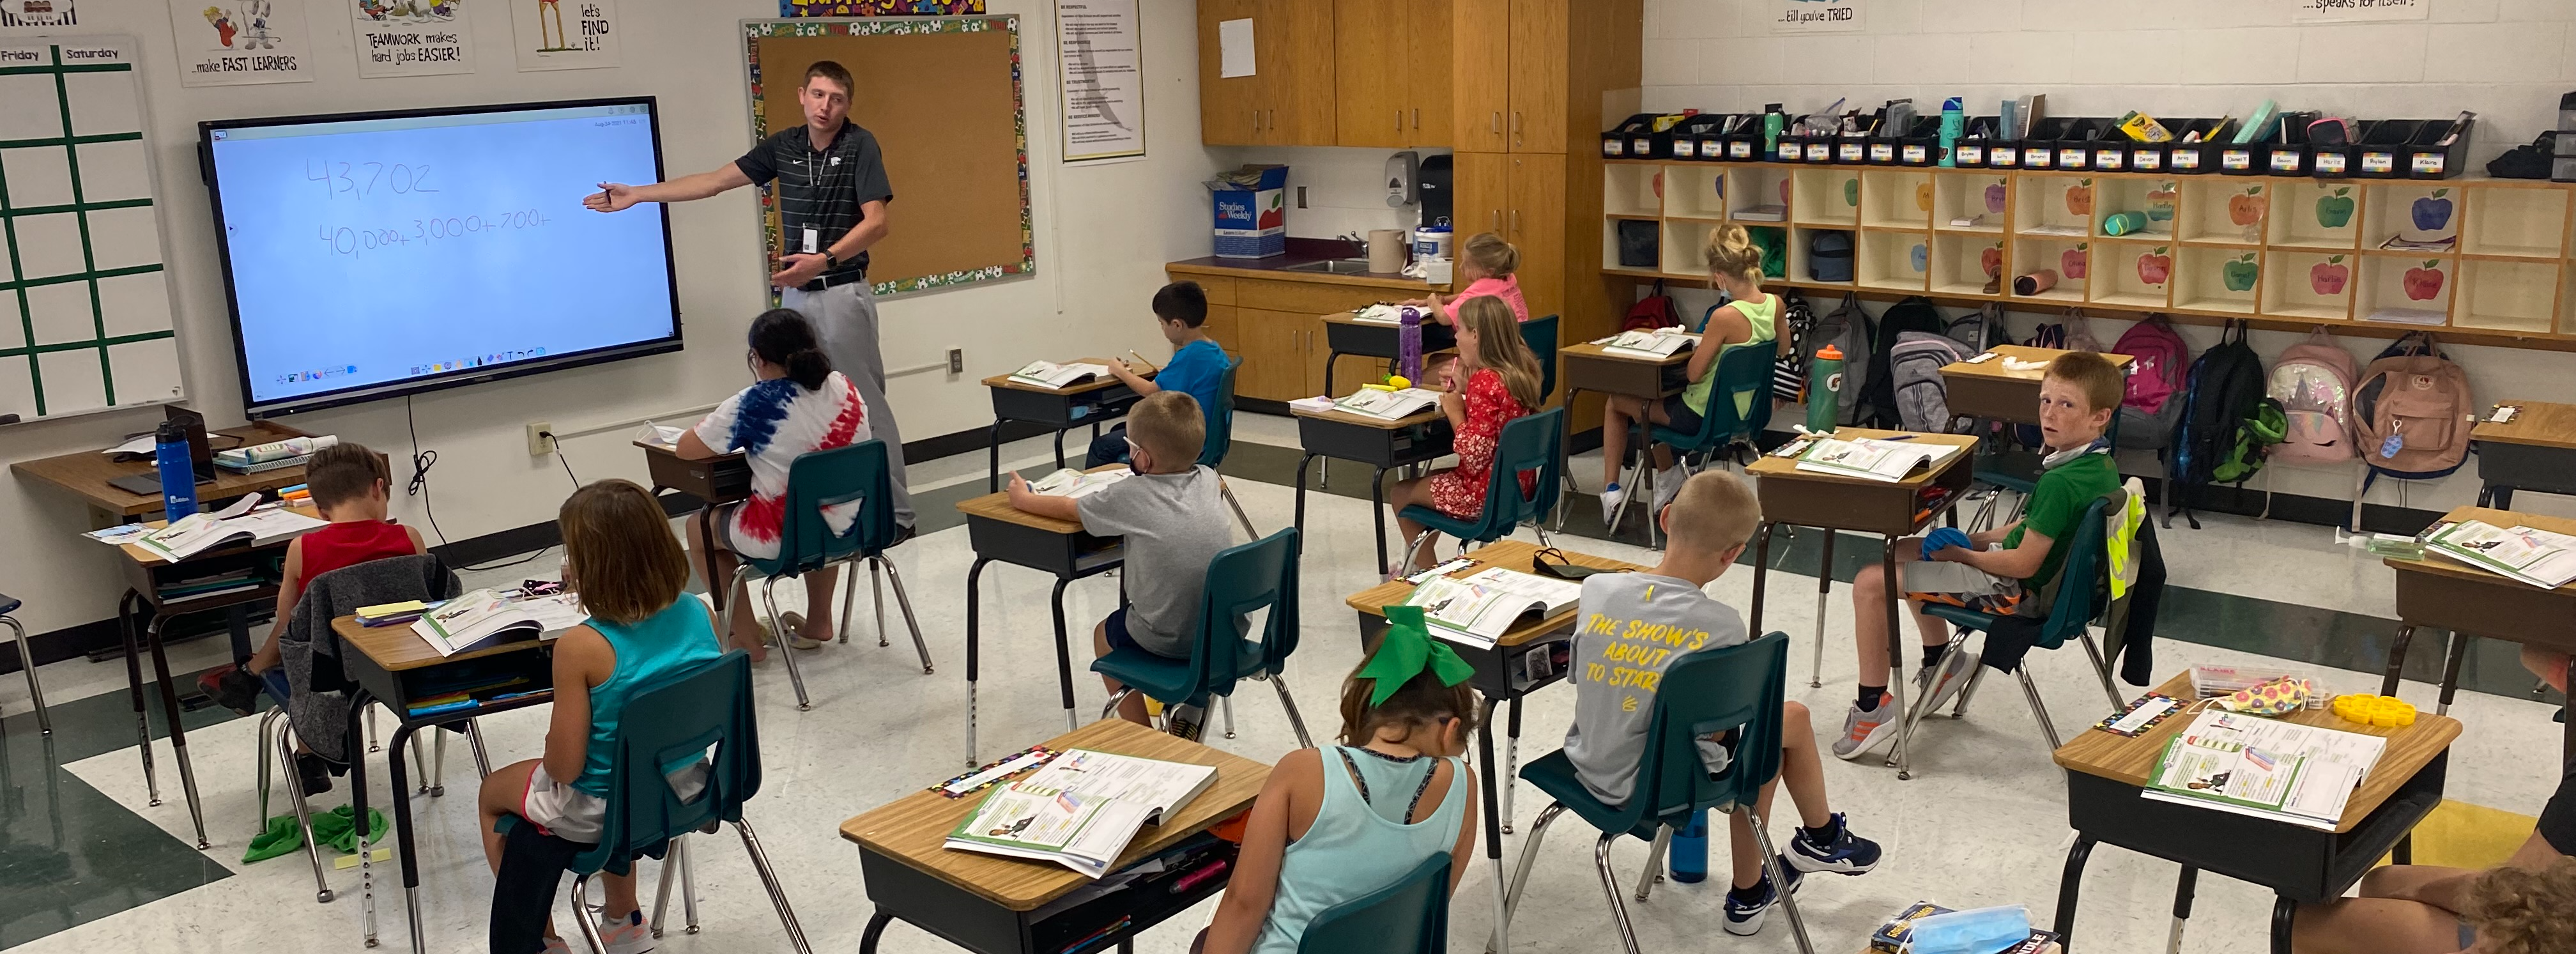 Back to School in Olpe Elementary